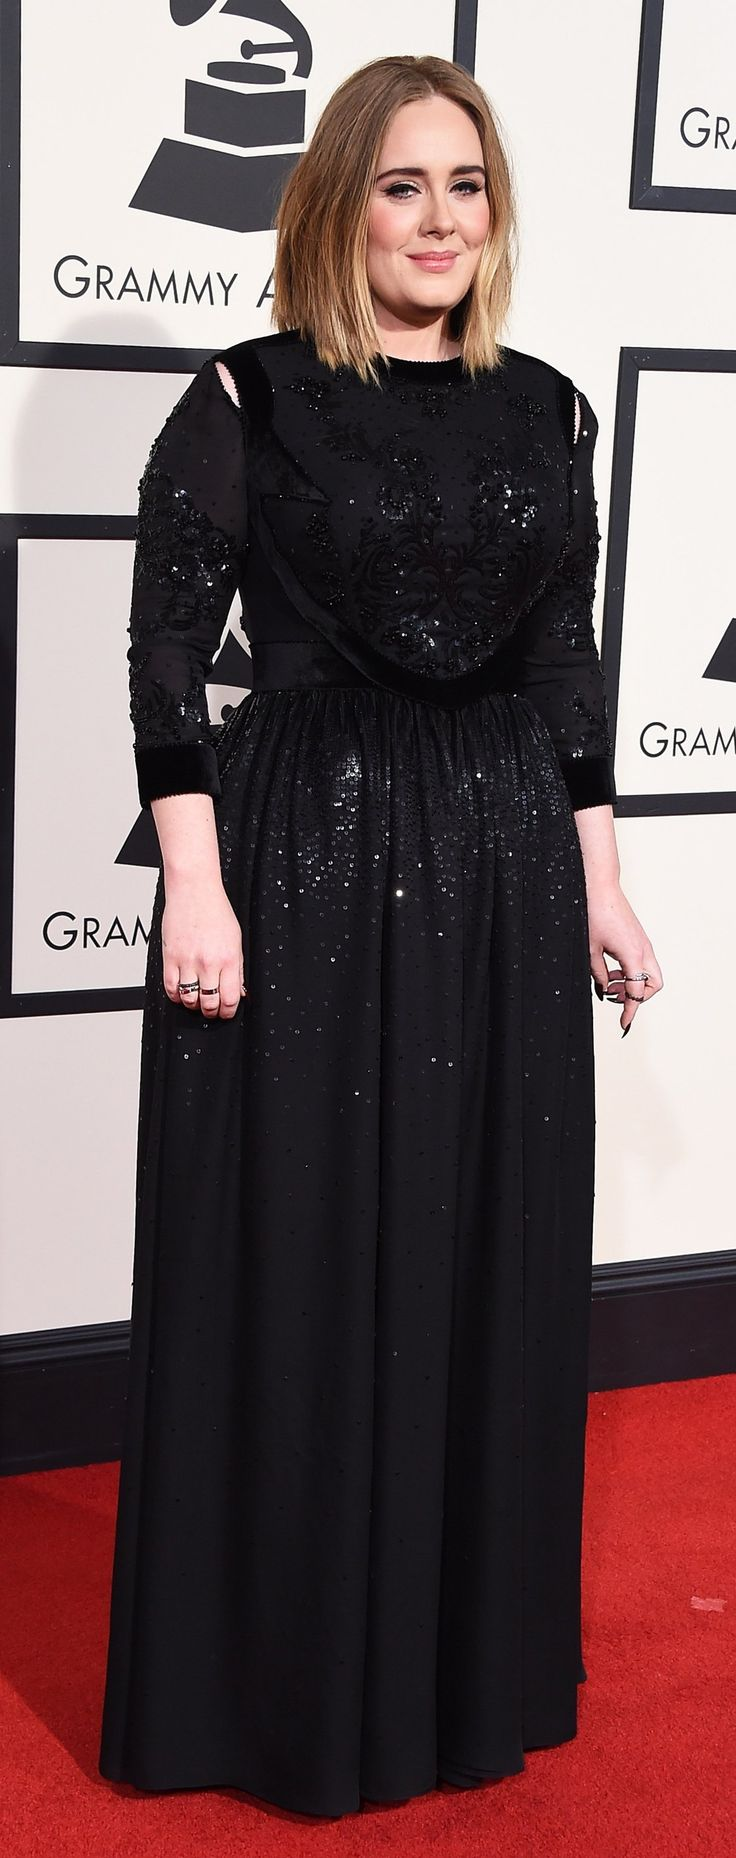 Is Adele's Grammys Gown All You Ever Wanted and More?